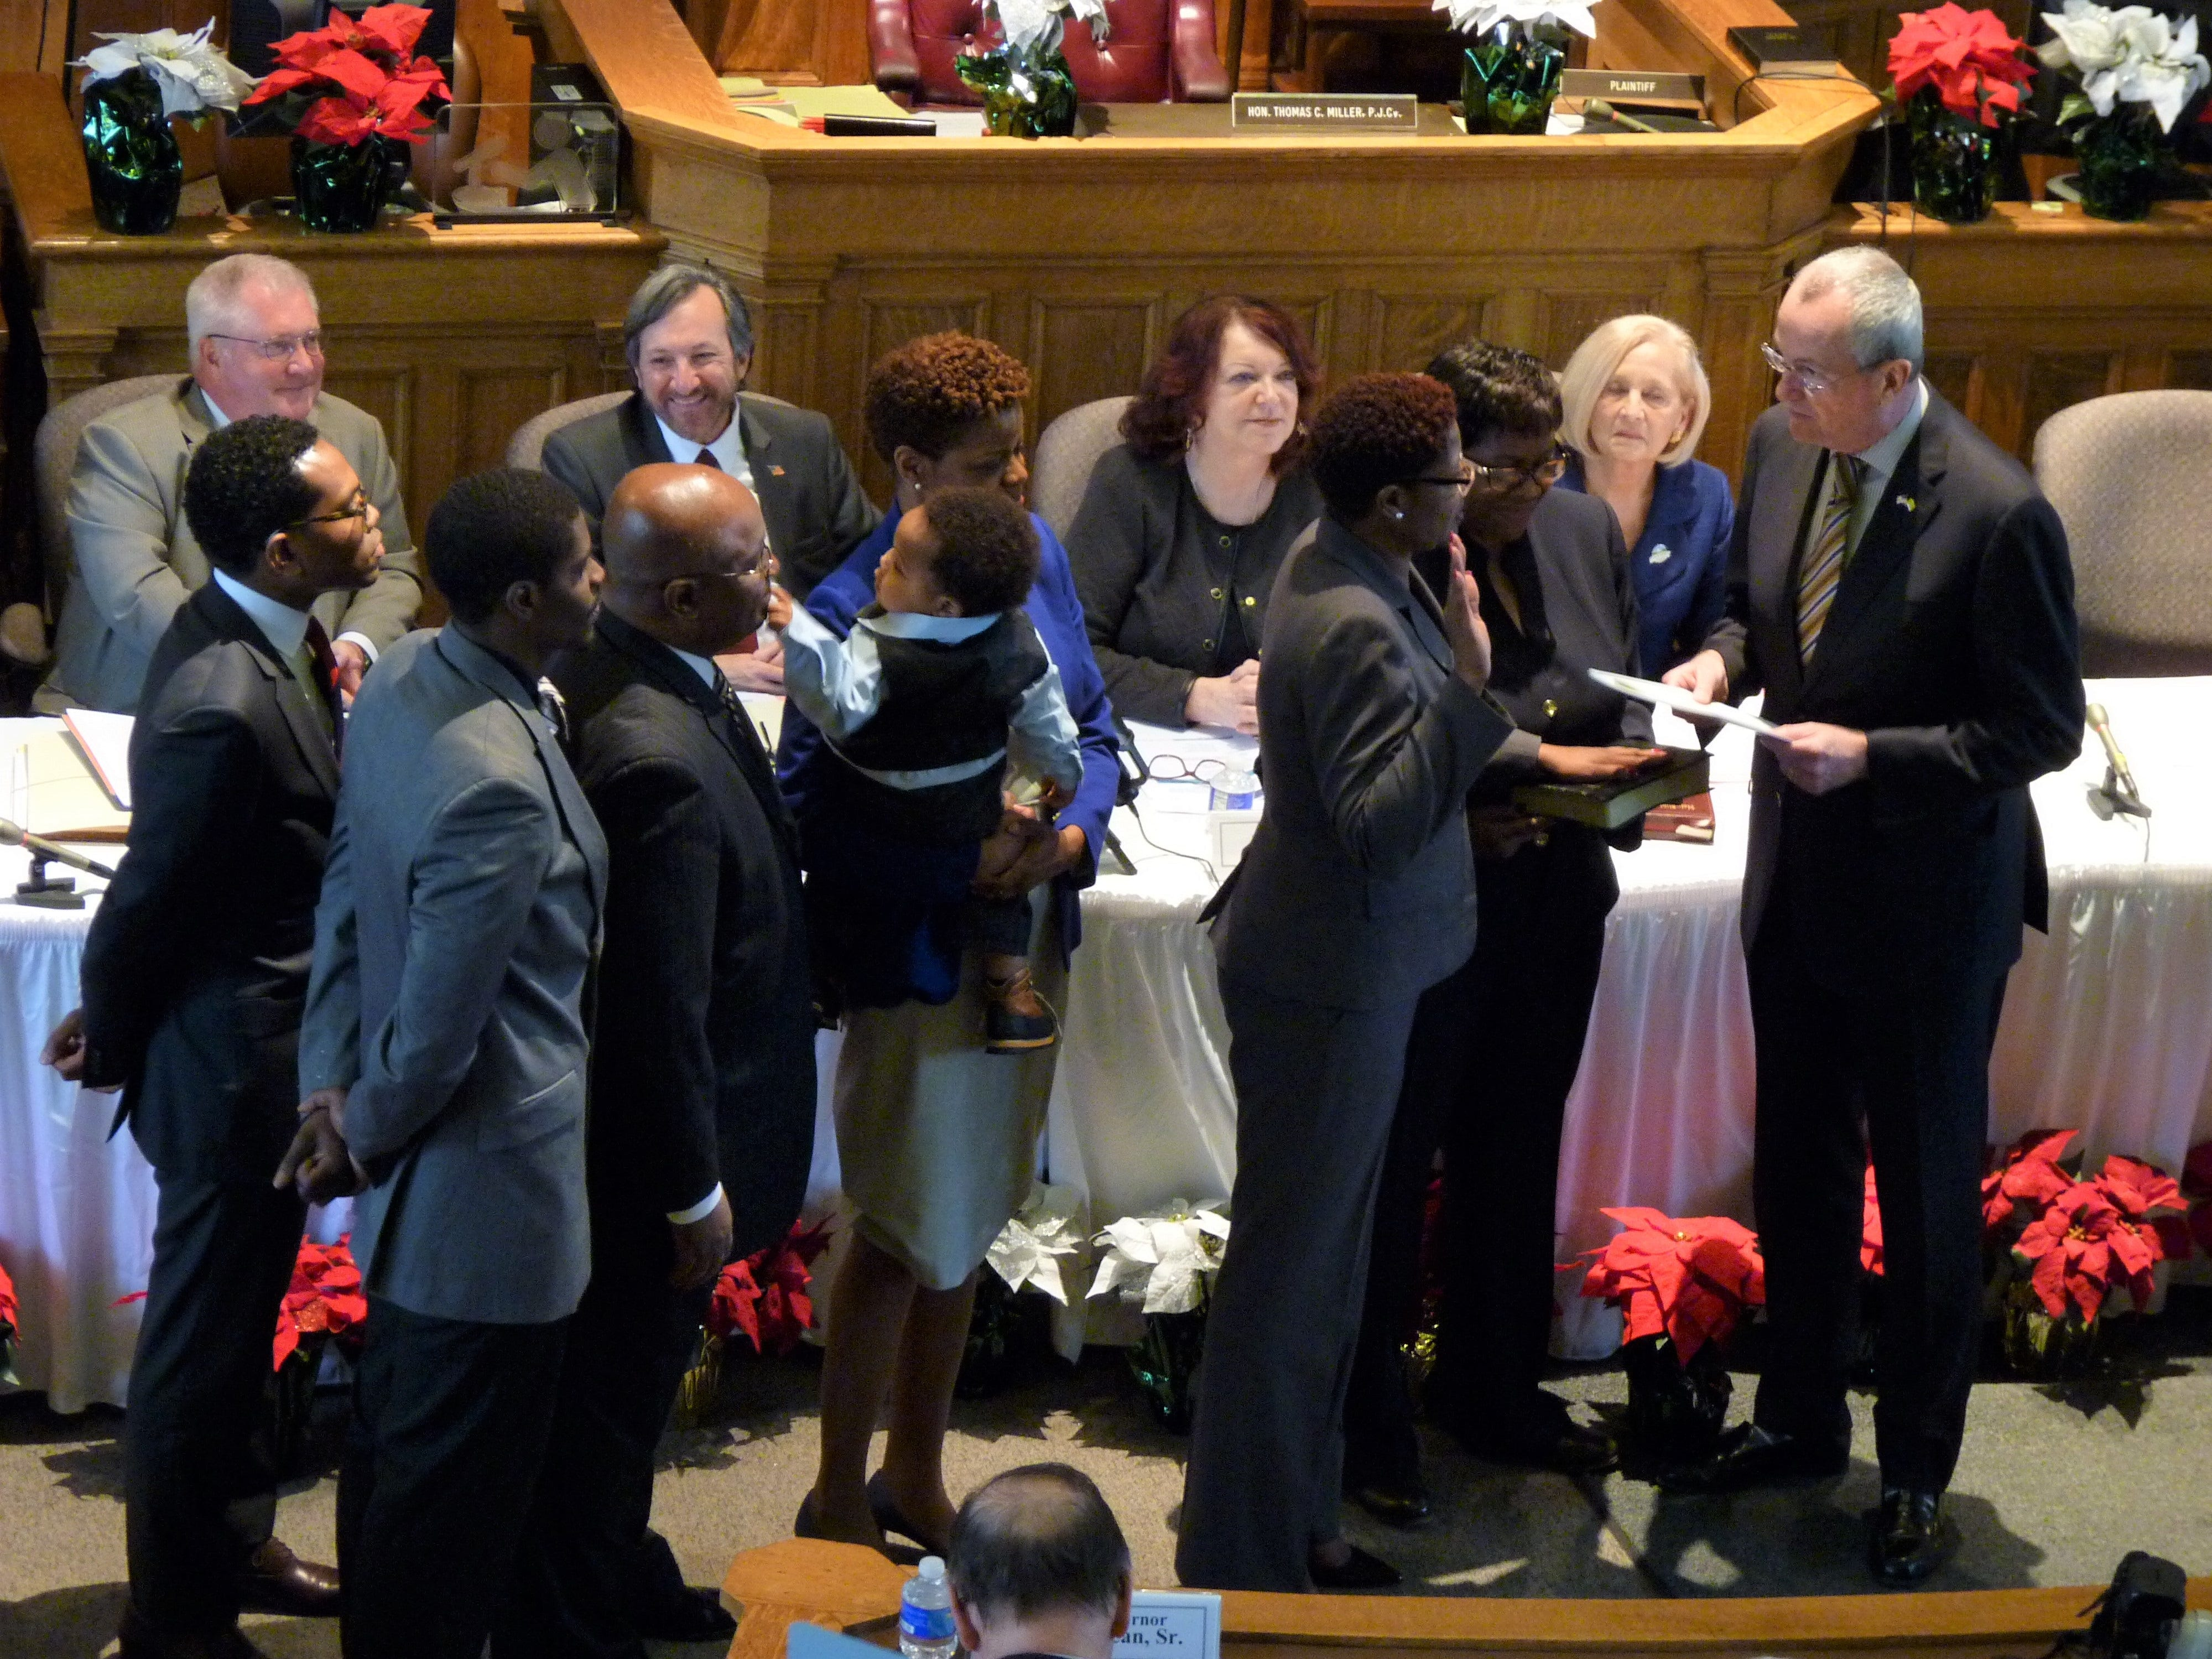 With her family behind her, Shanel Robinson is sworn in as Somerset County freeholder by Gov. Phil Murphy. Robinson and Sara Sooy became the first Democrats to serve on the freeholder board in more than three decades.